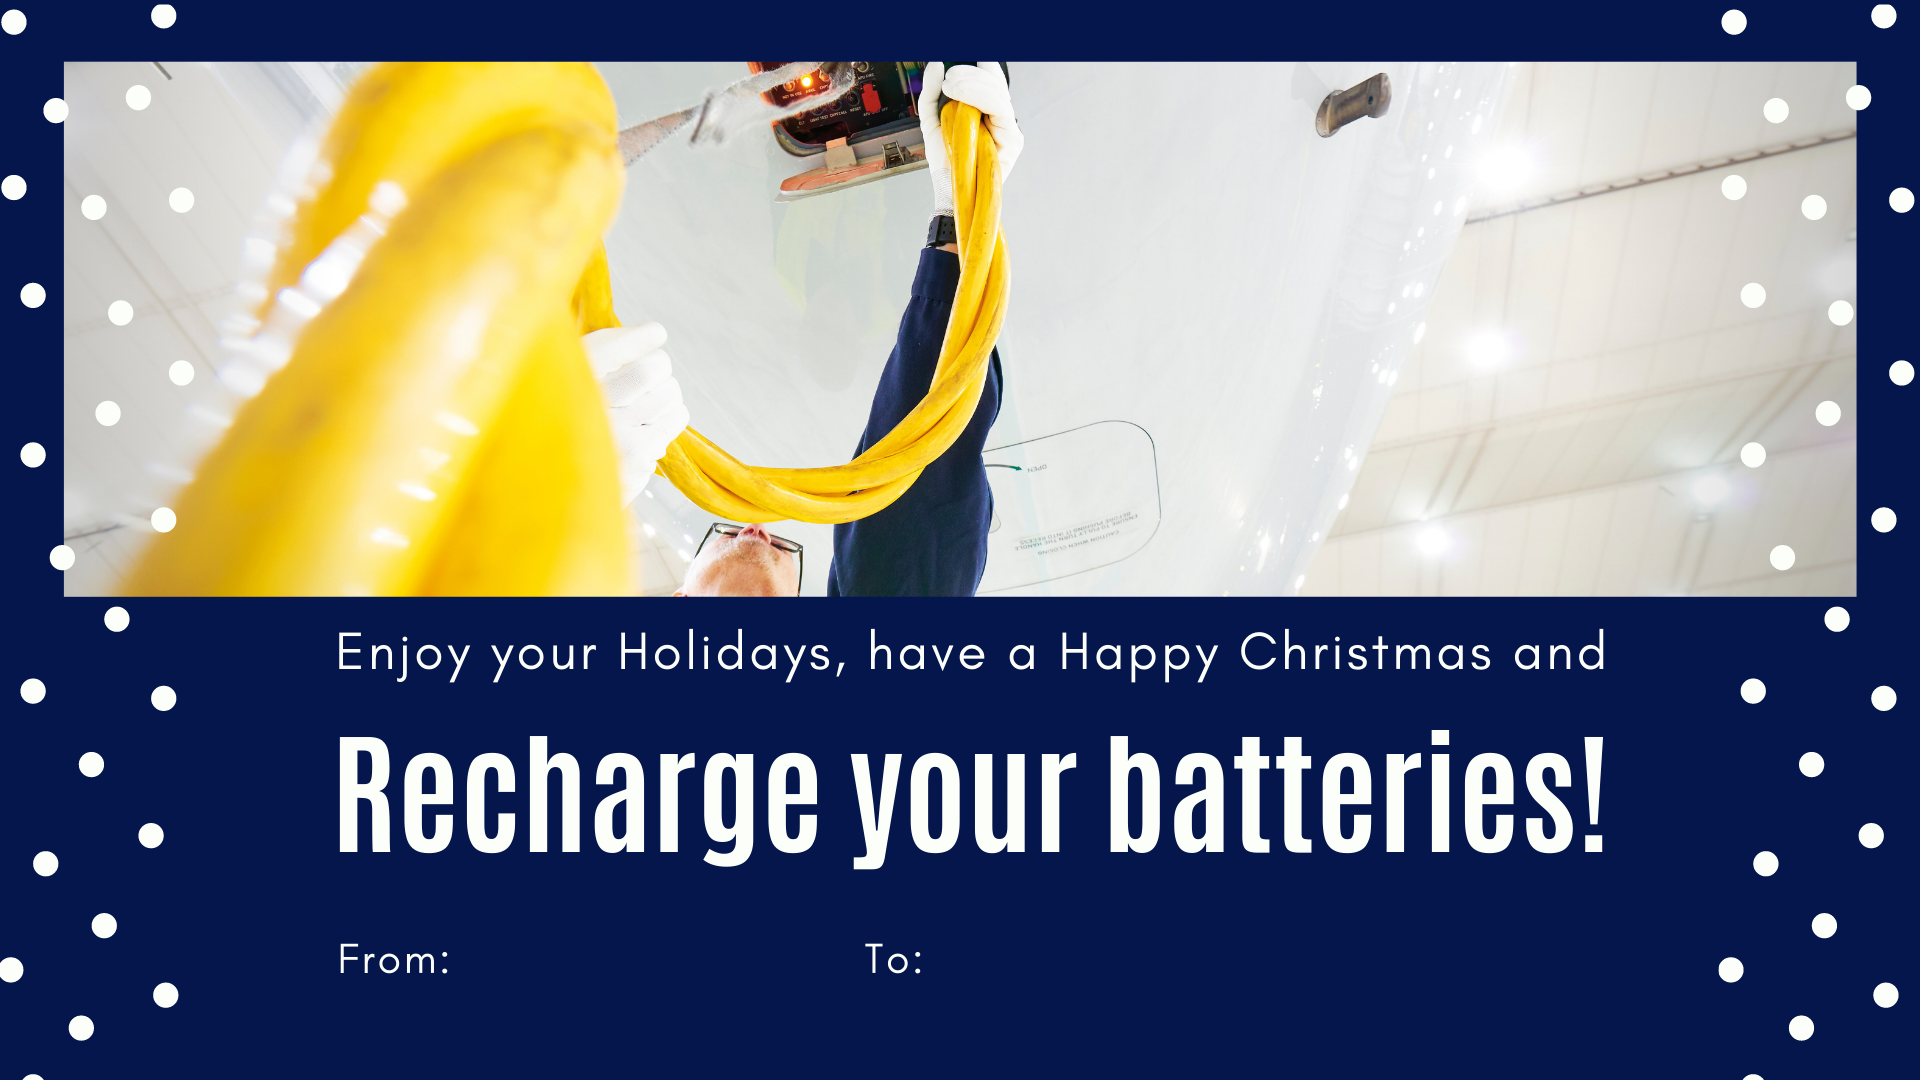 Enjoy your holidays and recharge your batteries!